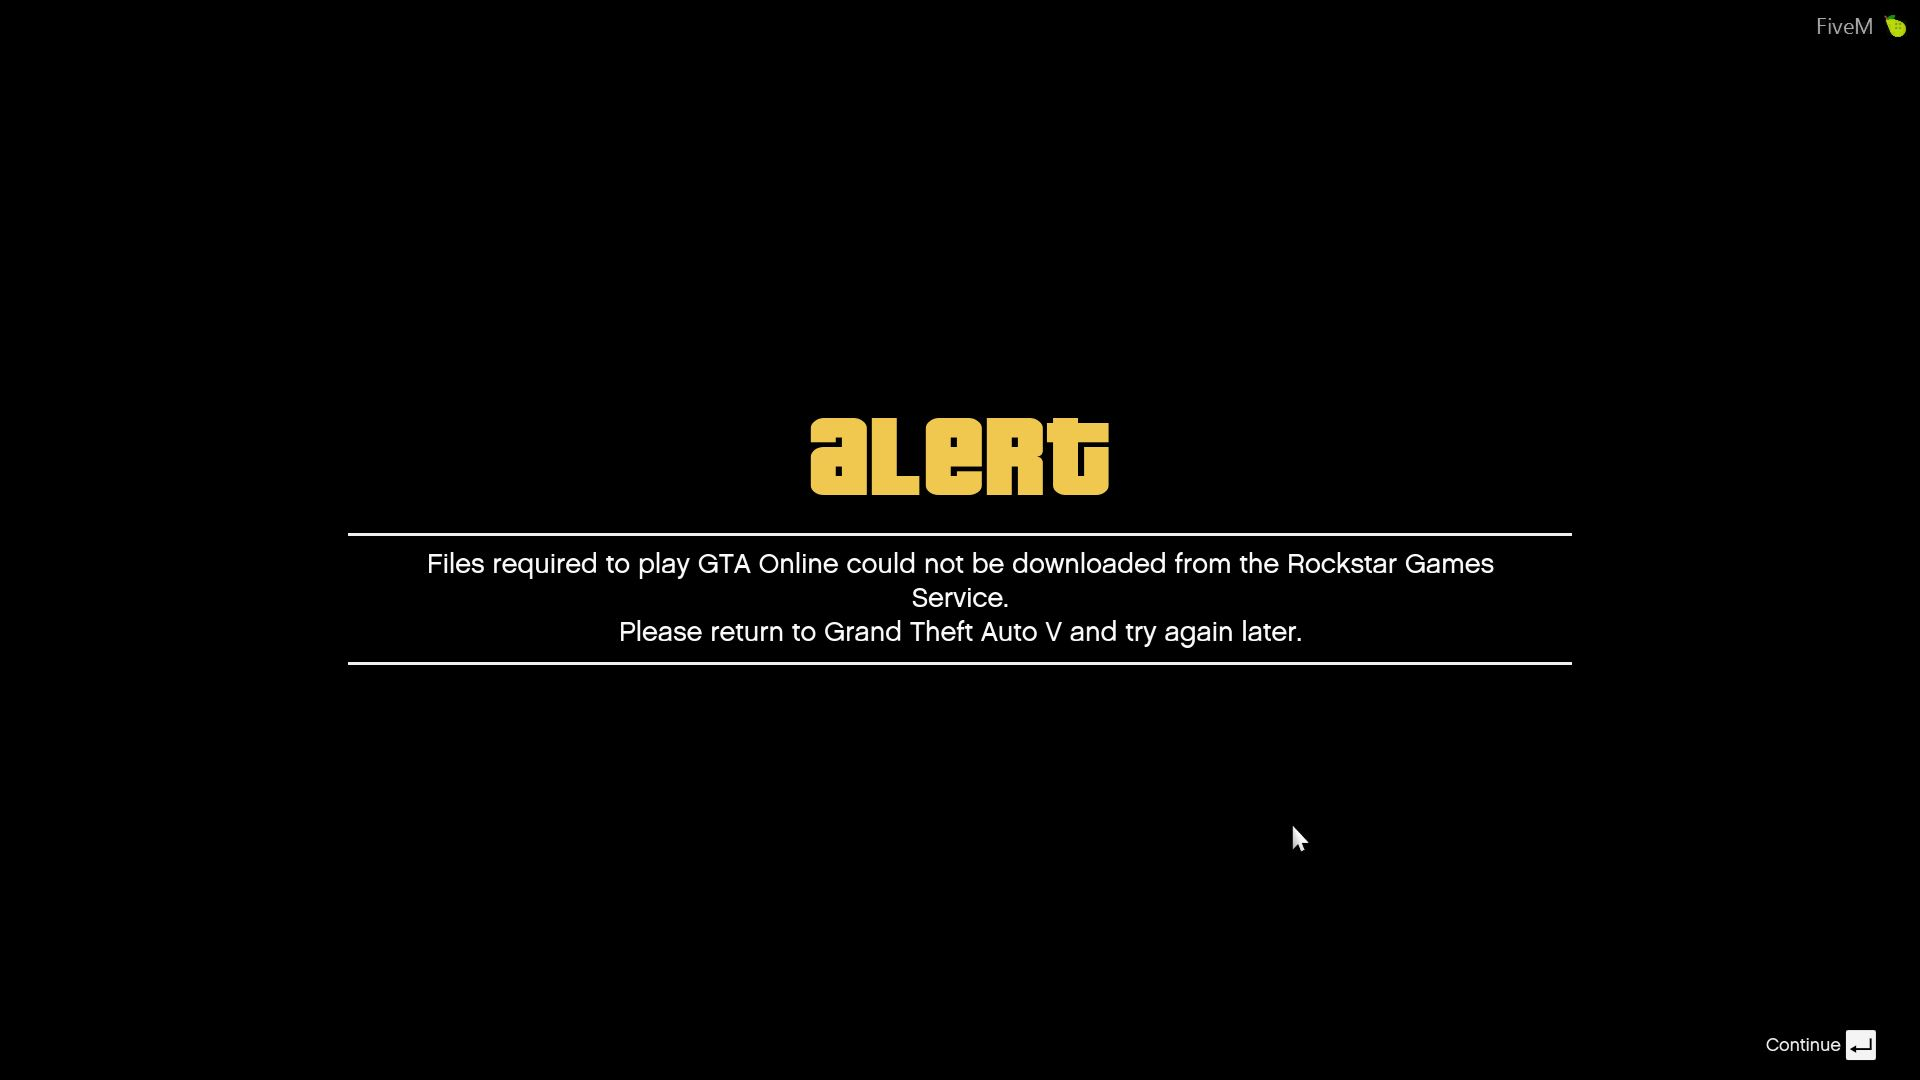 Gta v server download | RAGE Multiplayer - 2019-02-26